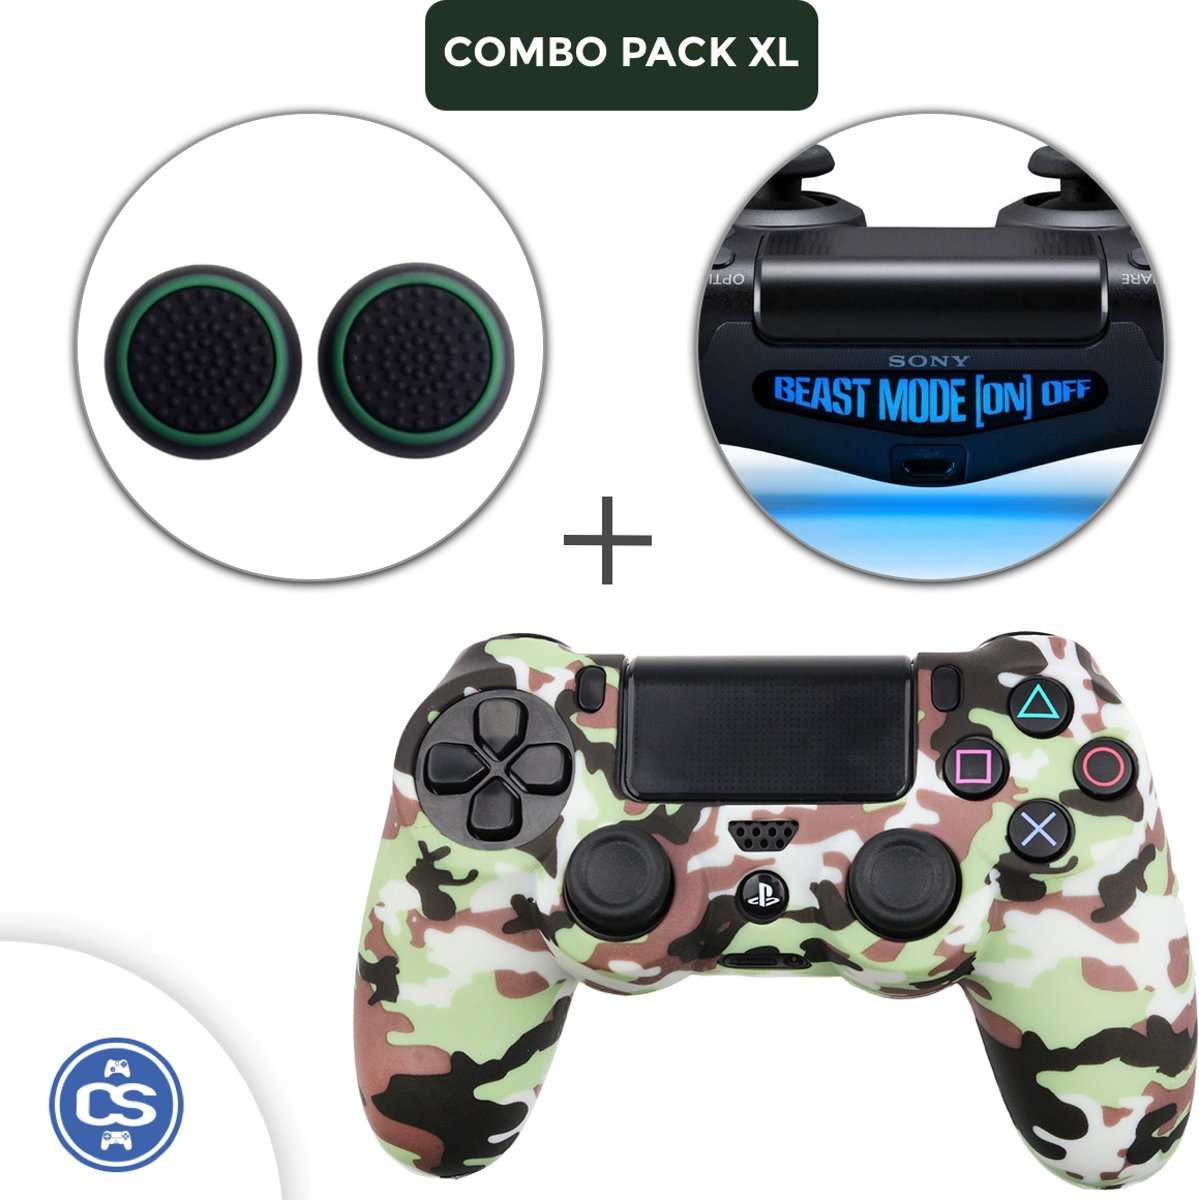 Camo Bruin Siliconen Beschermhoes + Thumb Grips + Lightbar Skin voor PS4 Dualshock PlayStation 4 Controller - Softcover Hoes / Case